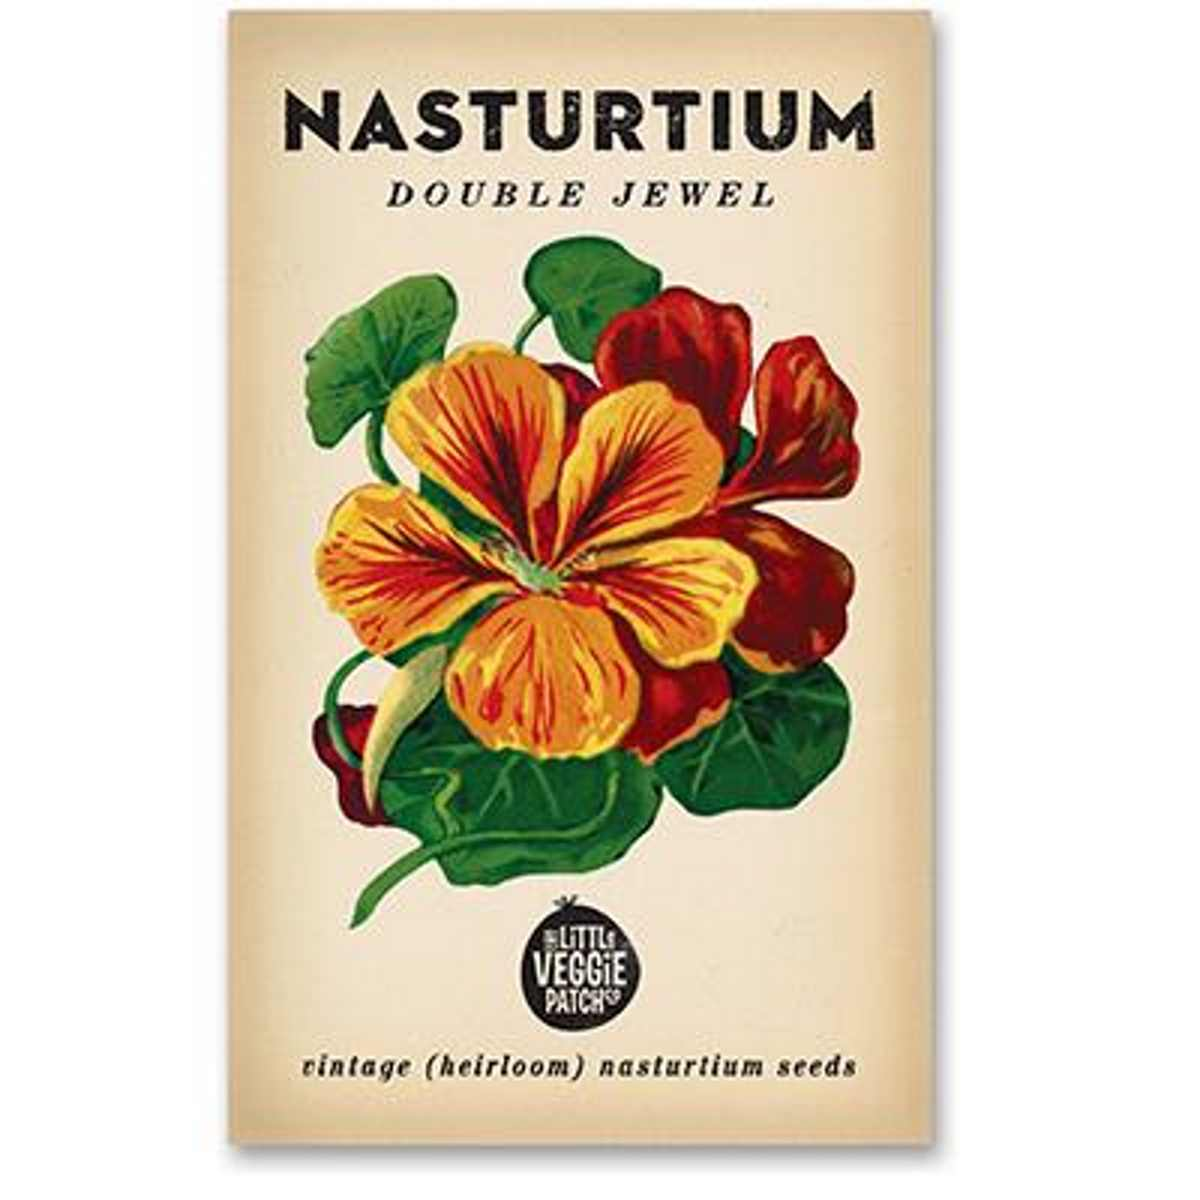 Nasturtium (Double Jewel) Heirloom Seeds - Seeds - Throw Some Seeds - Australian gardening gifts and eco products online!